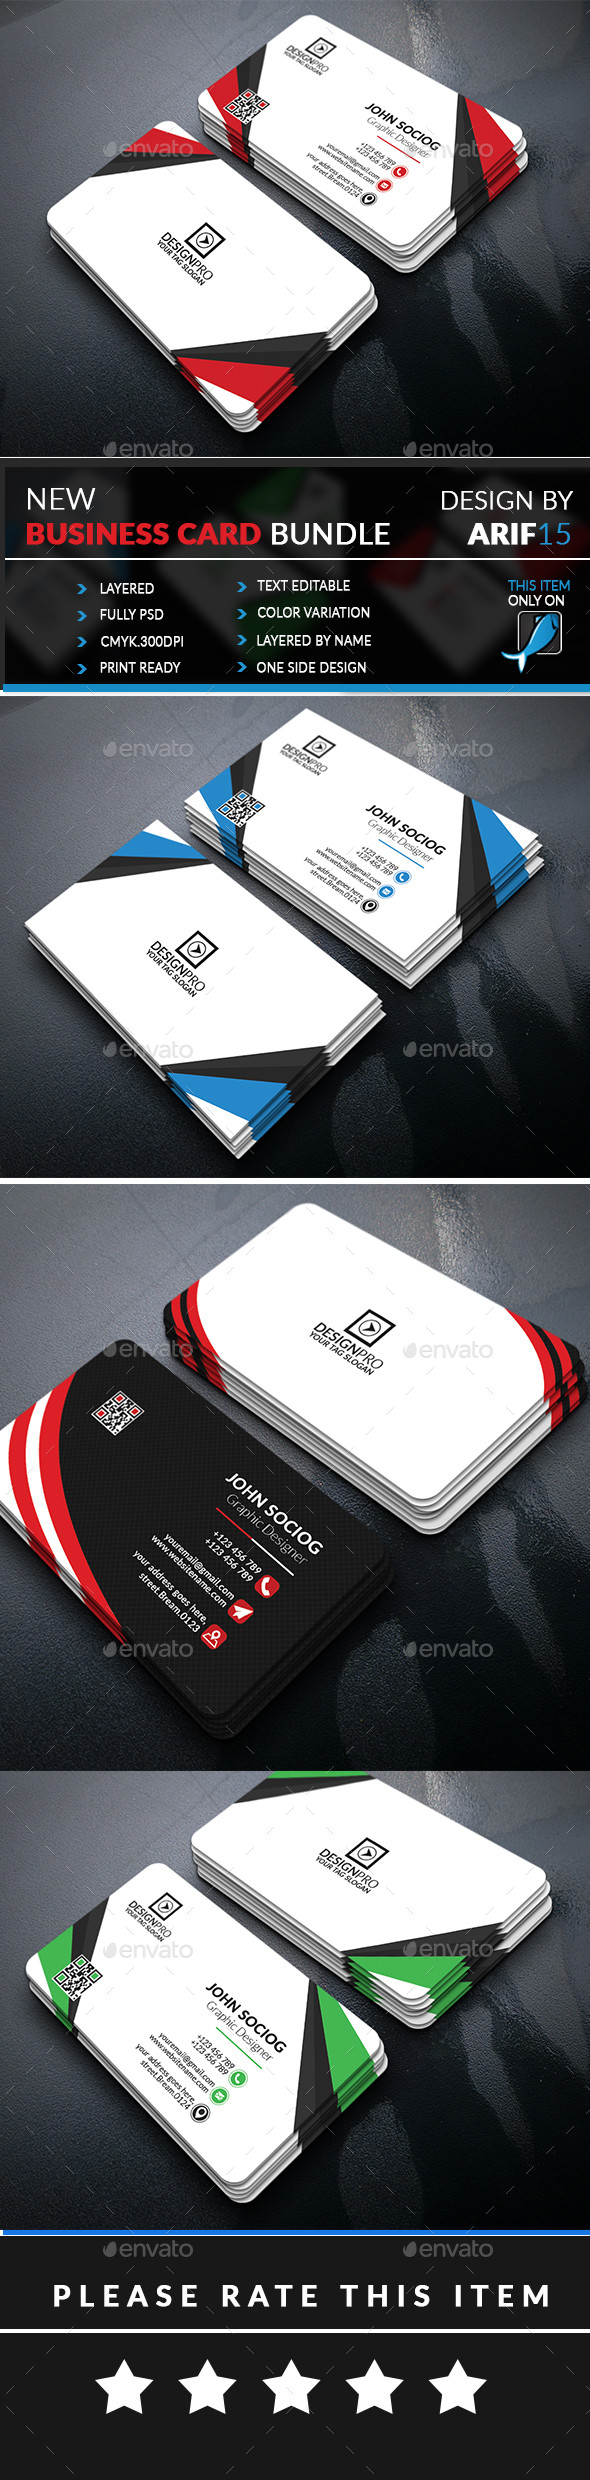 Bundle - Business Cards Print Templates